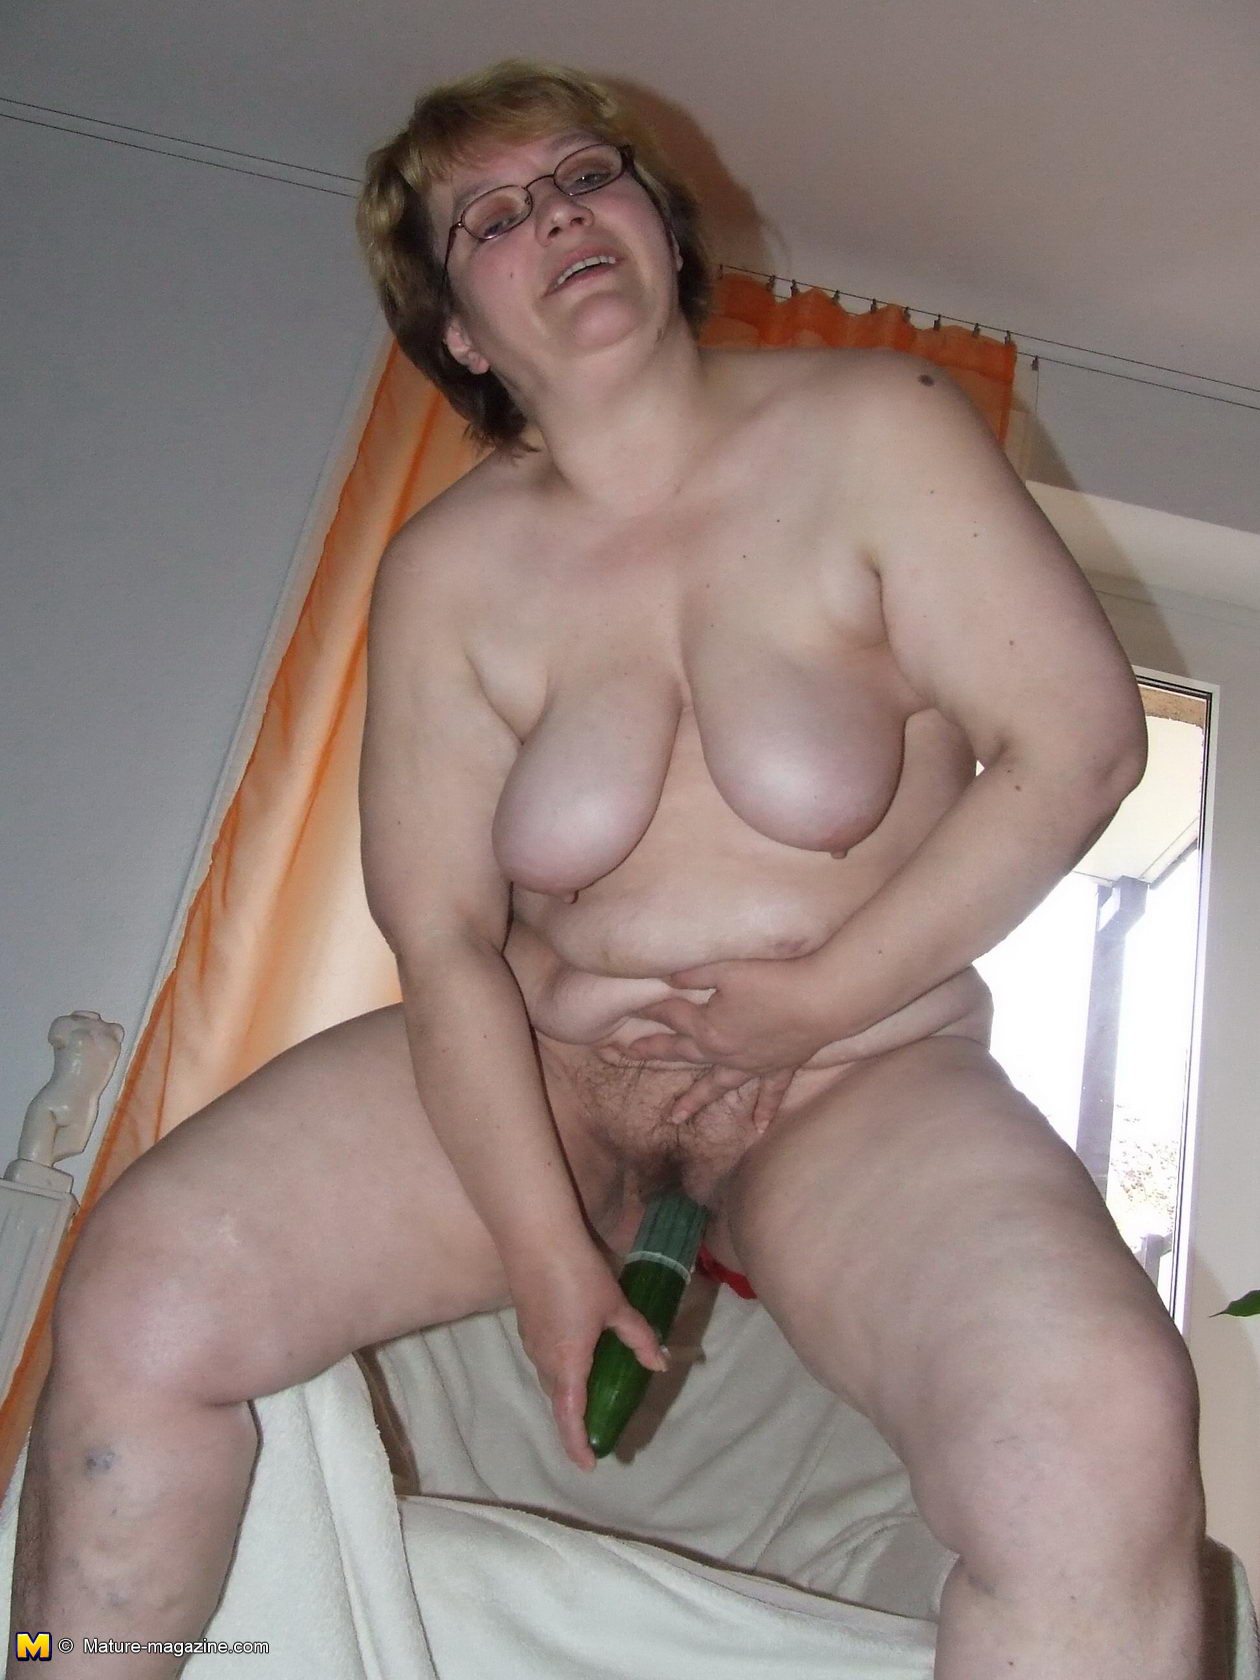 Reserve, neither Dirty granny slut can